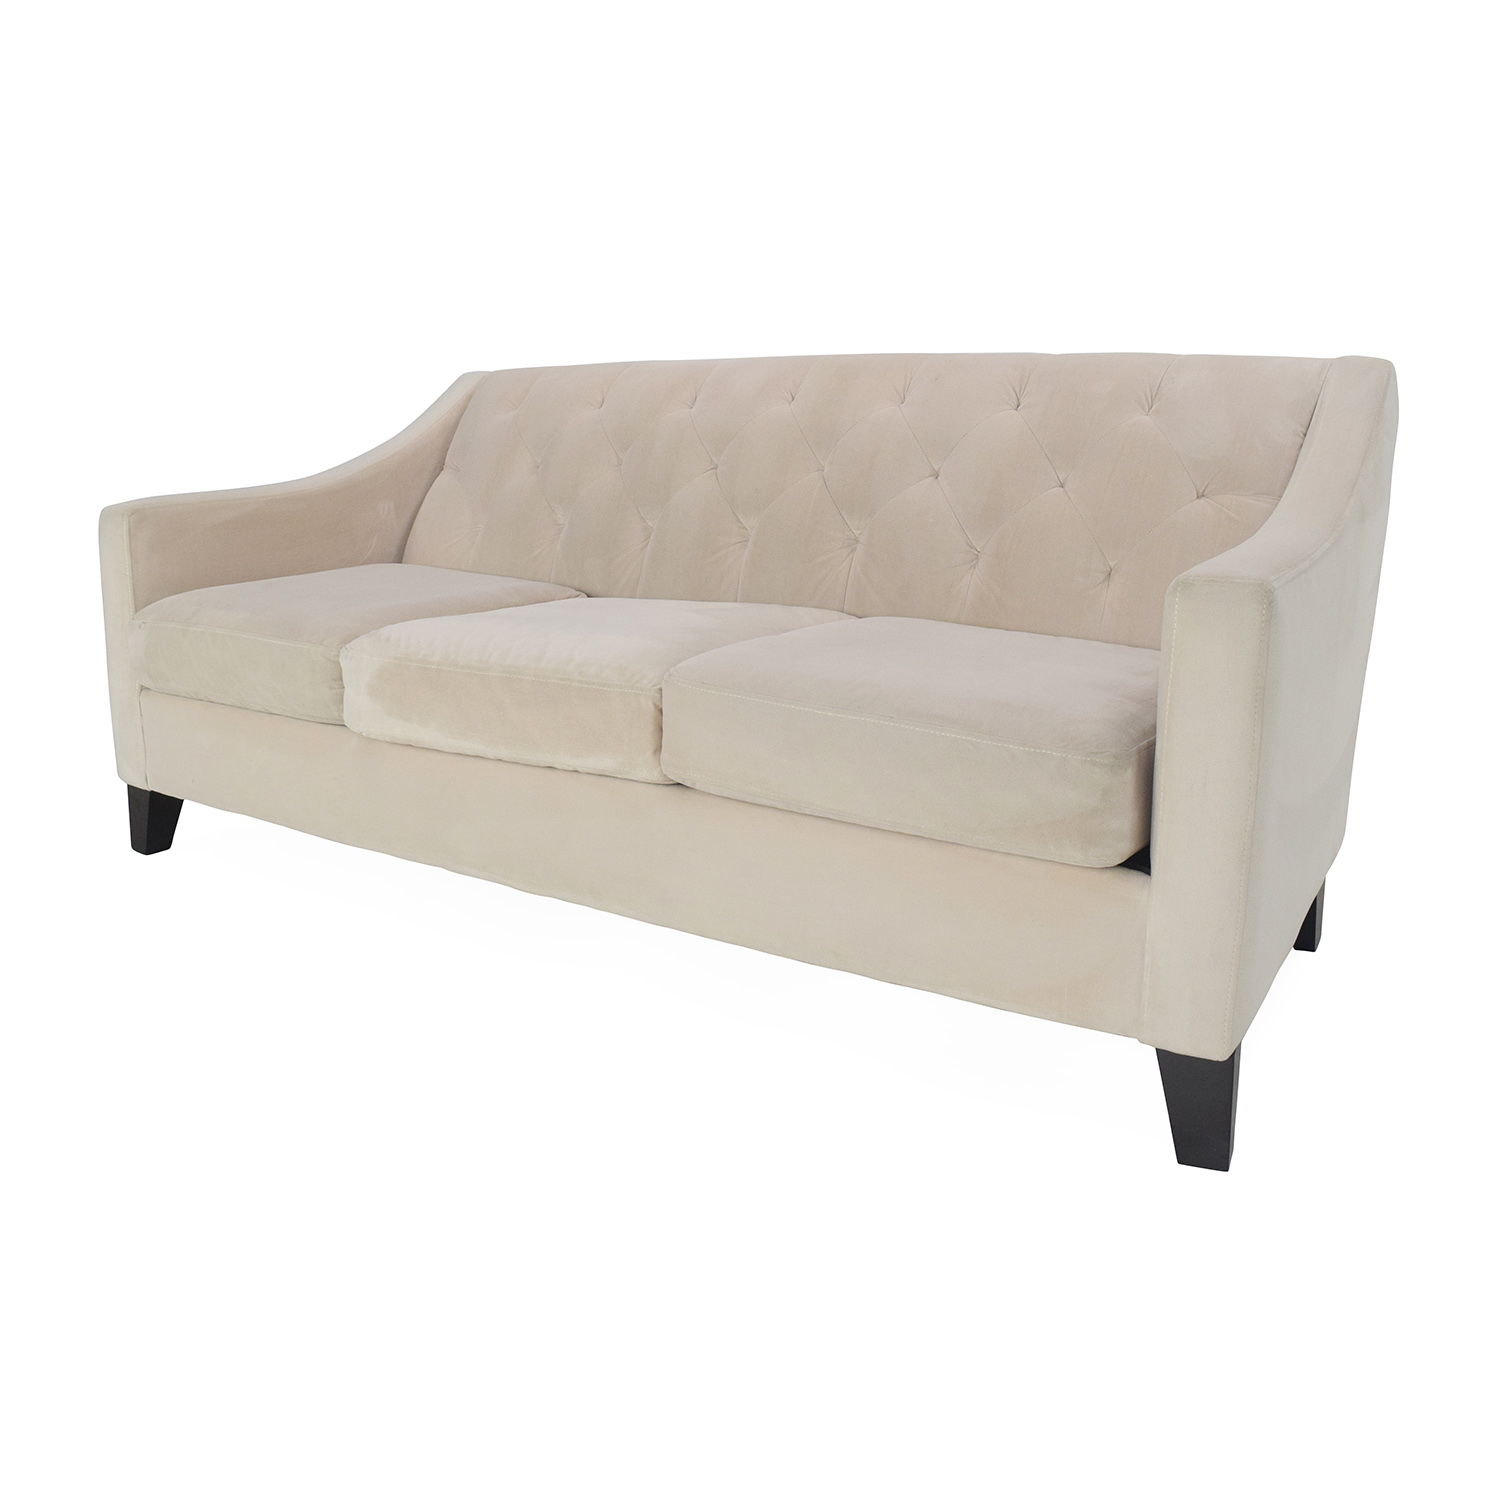 58 OFF Max Home Furniture Macys Chloe Tufted Sofa Sofas